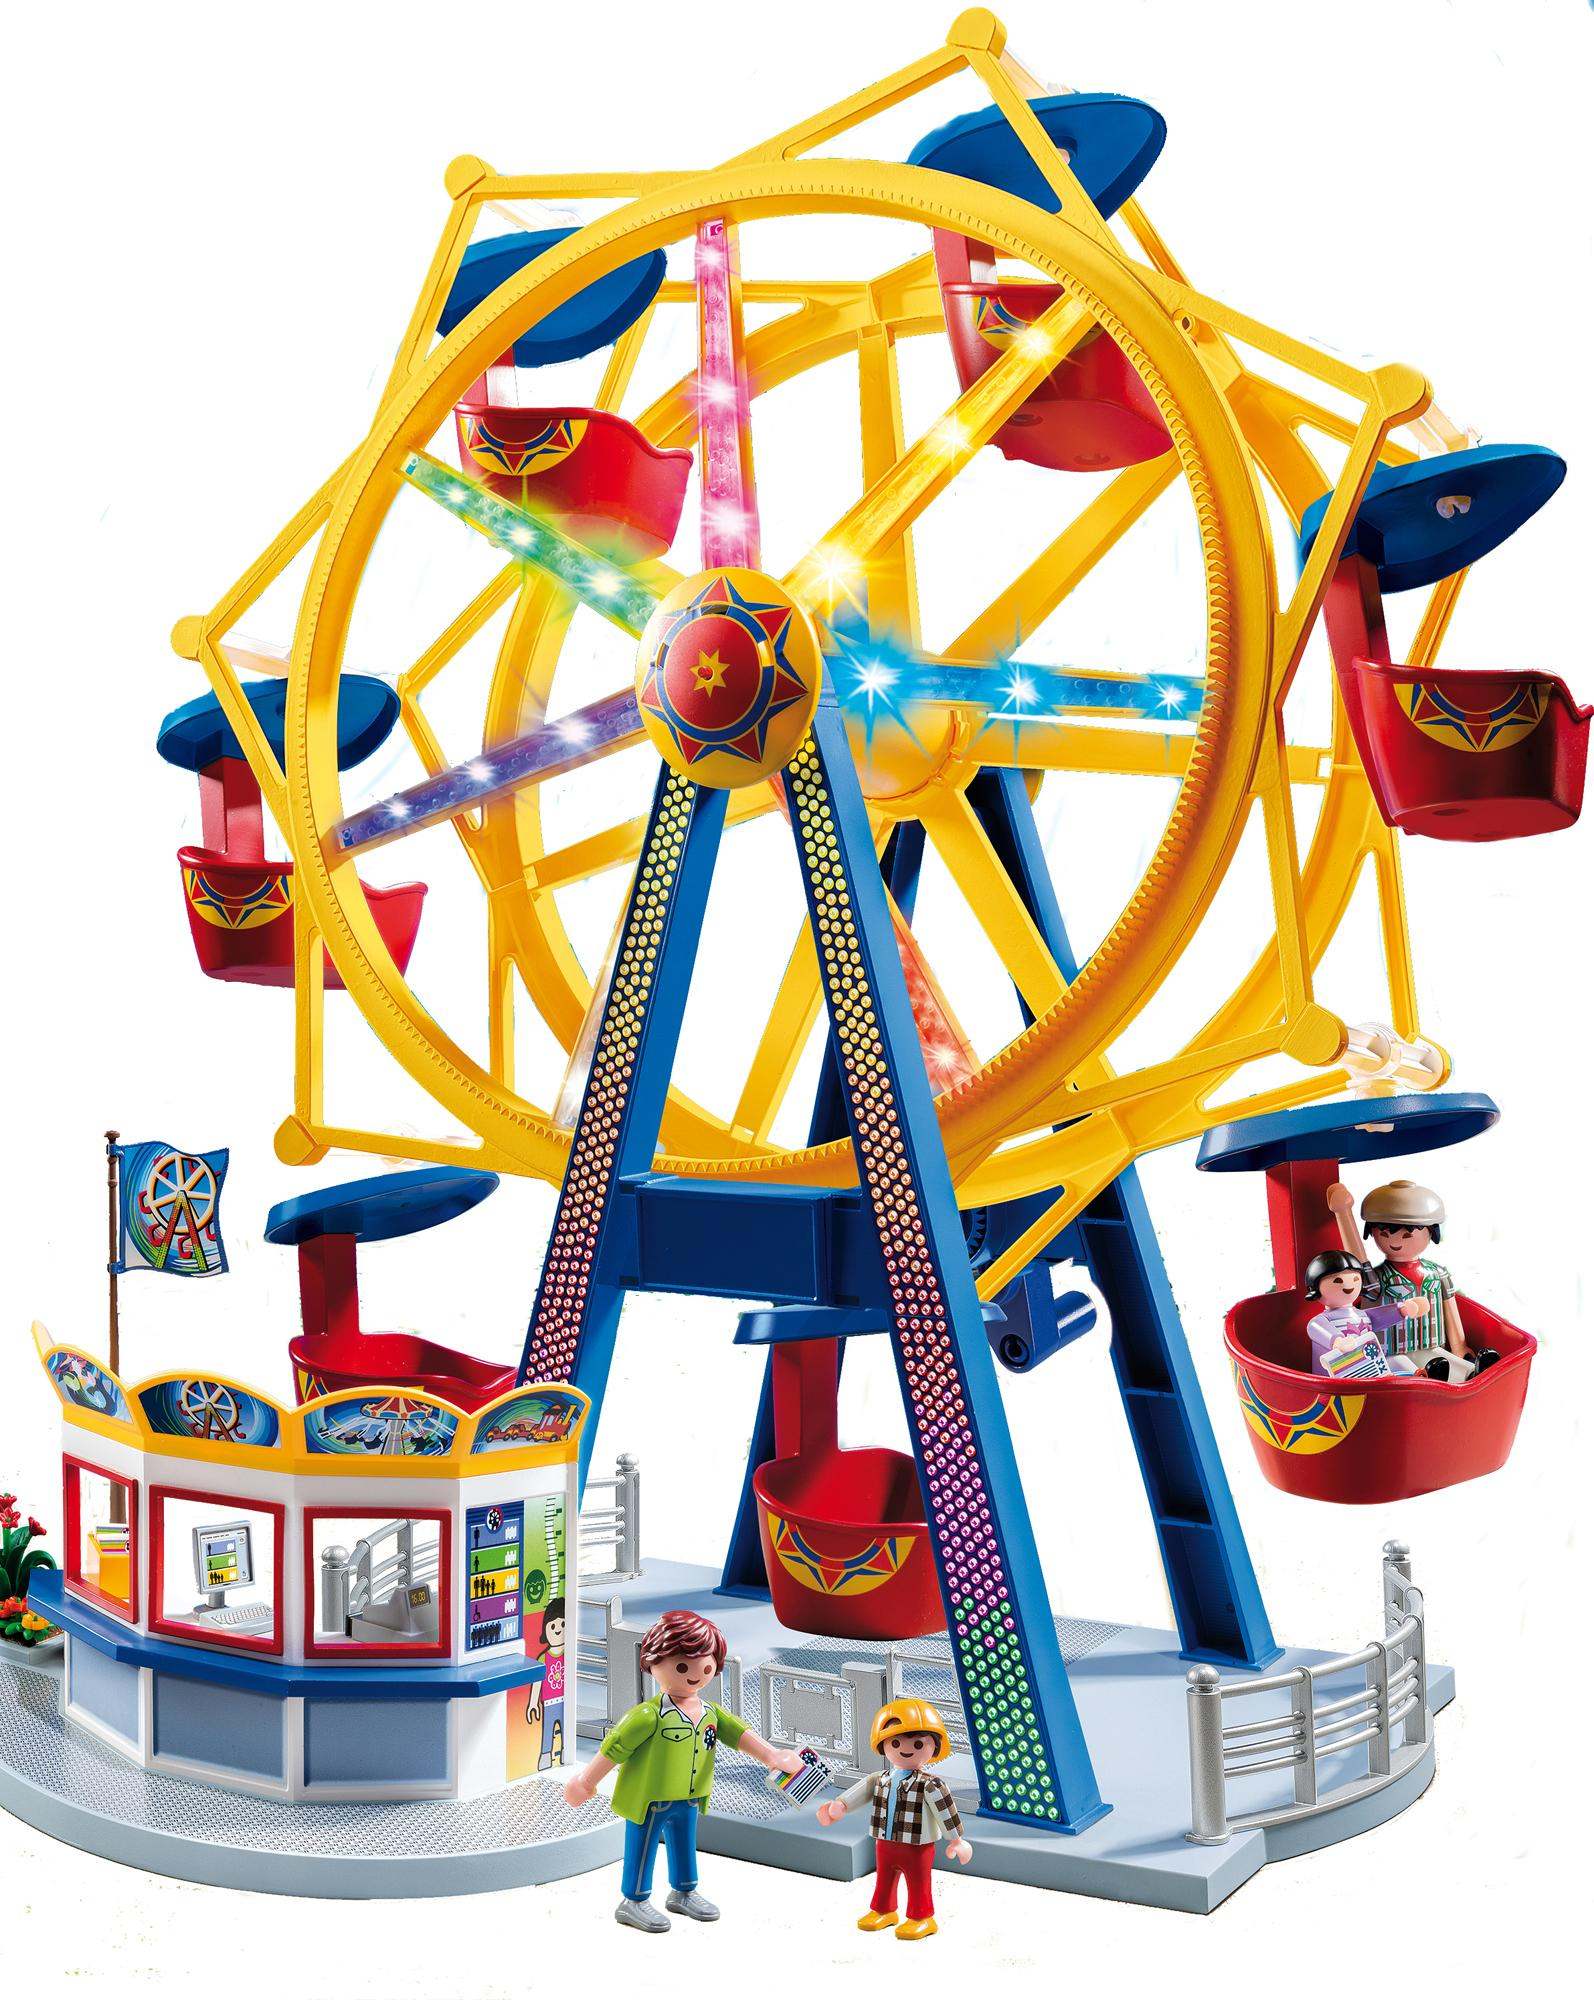 Playmobil 5552 Ferris Wheel with Lights Brand New